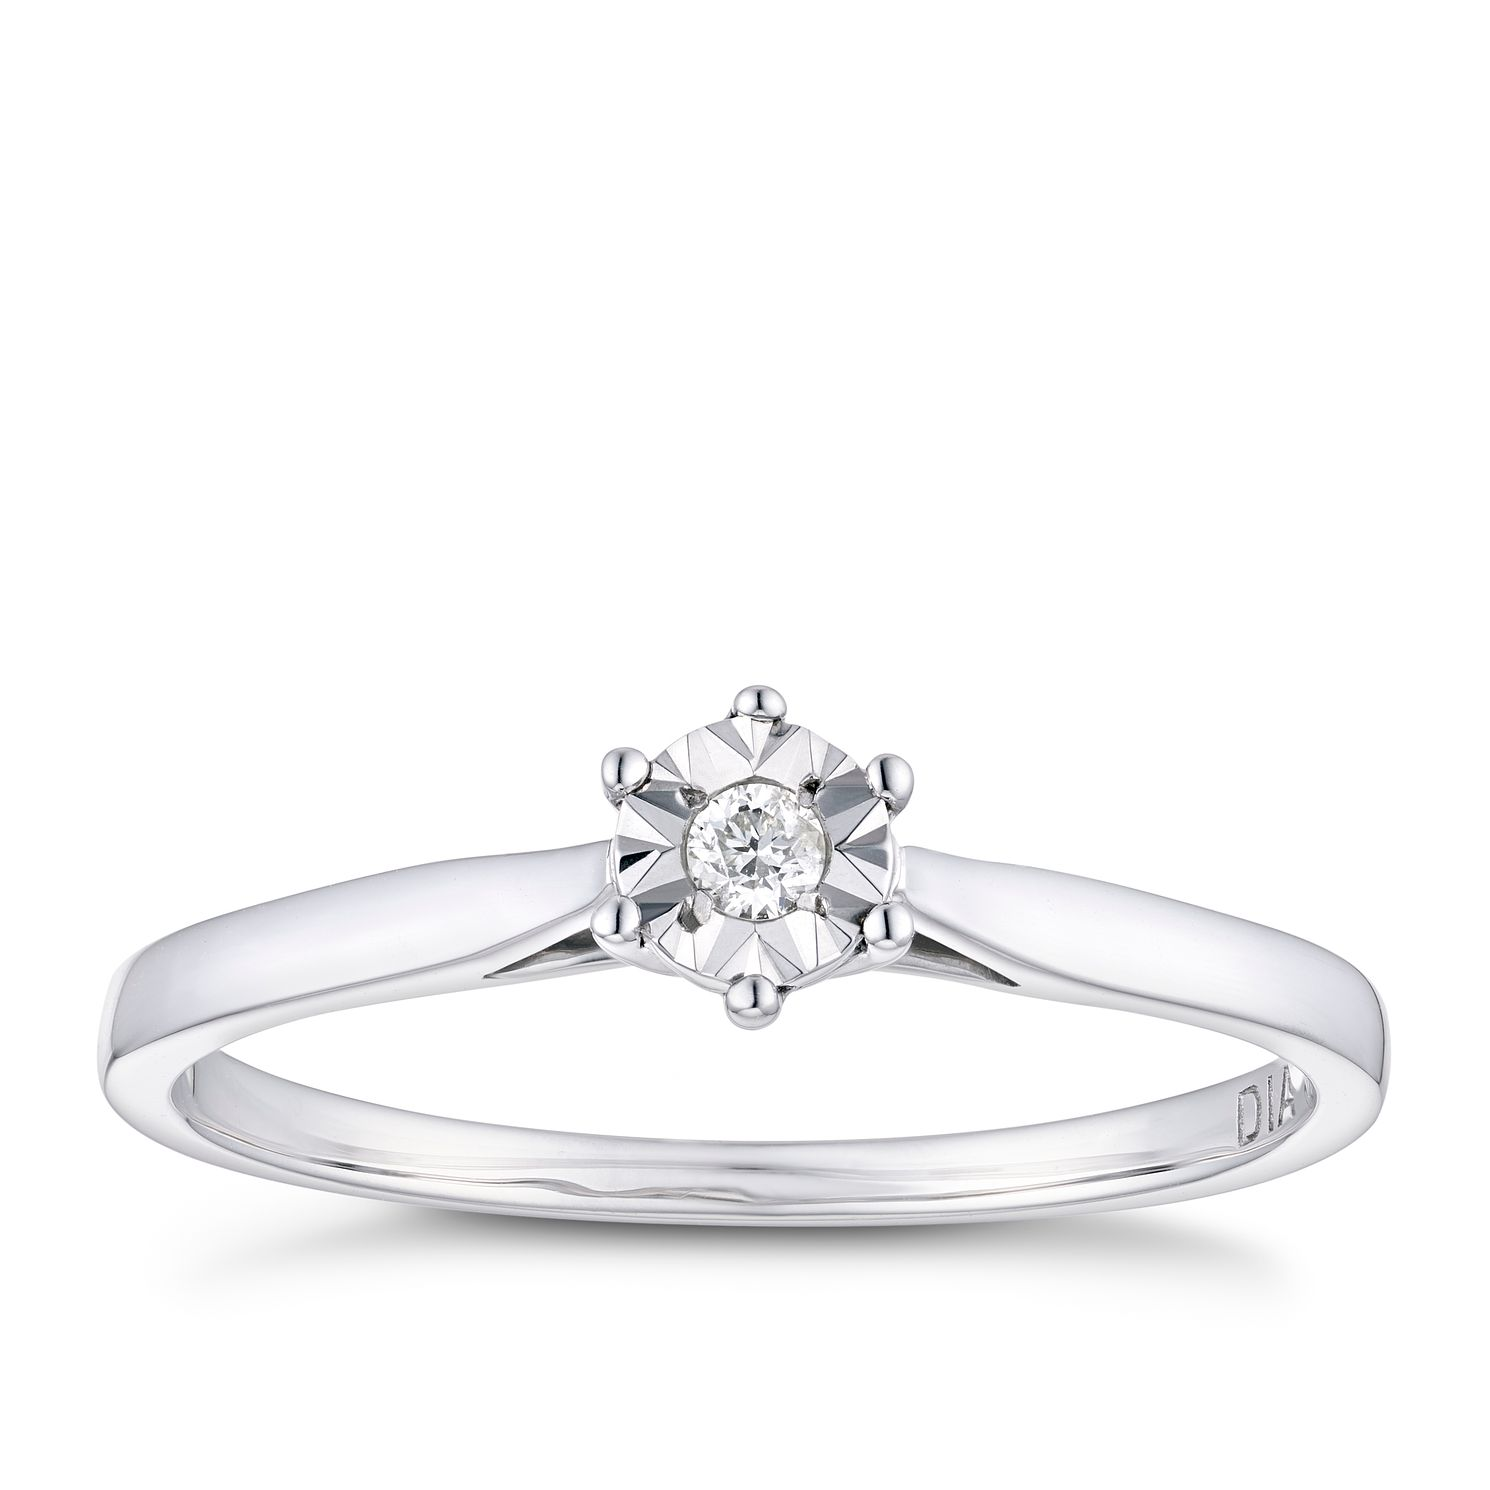 tw diamond flawless ring solitaire grahams in platinum image a jewellers cut jewellery